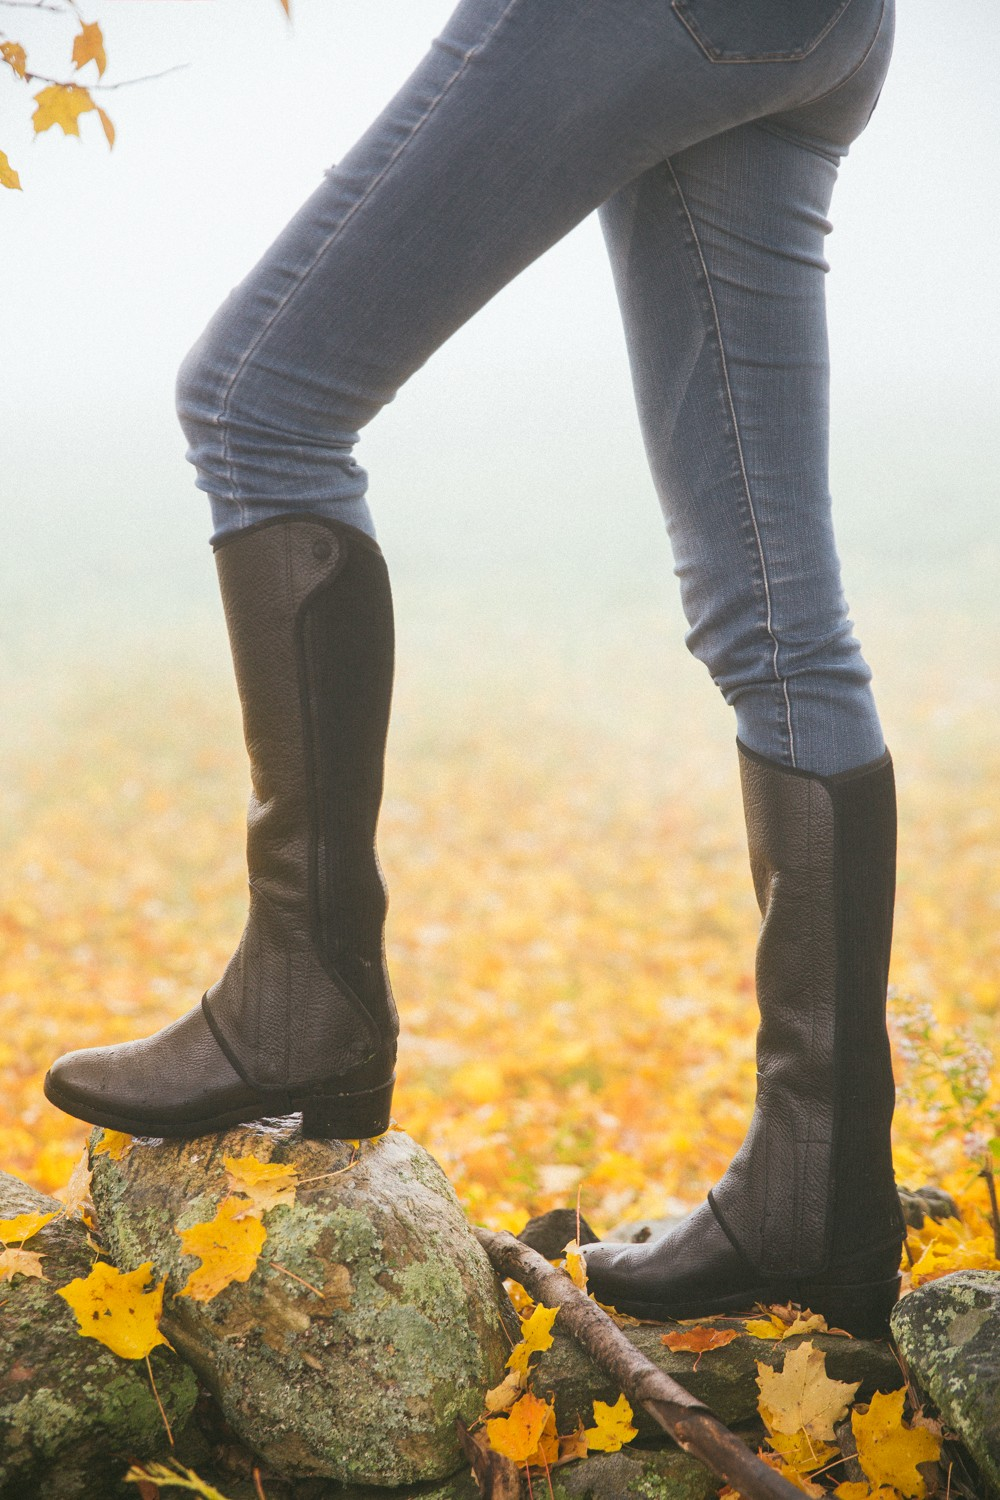 Foggy walk in the crunchy leaves (and convertible leather boots)